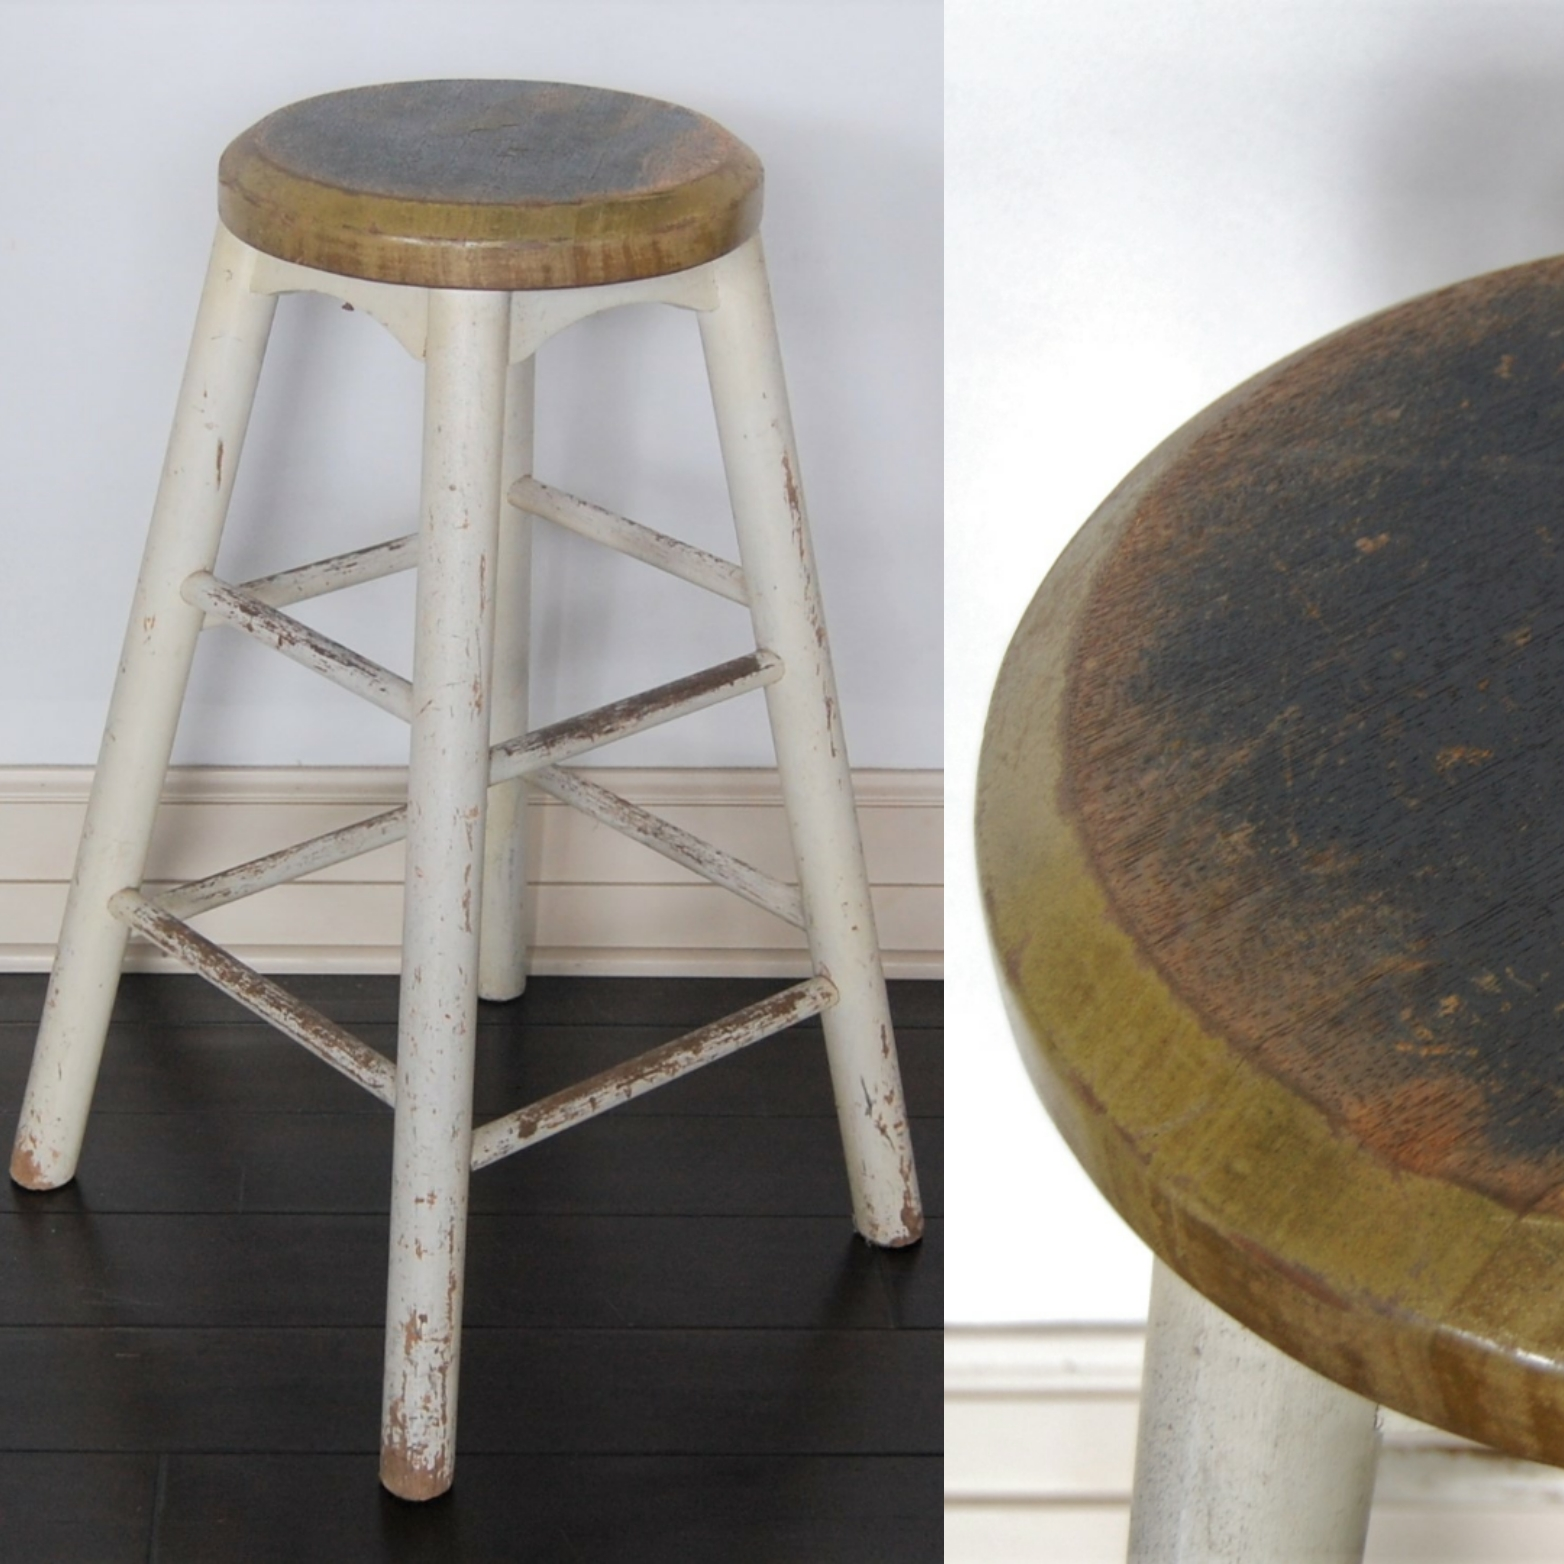 Admirable Rustic Wood Farm Stool Marinus Home Seattle Online Store Creativecarmelina Interior Chair Design Creativecarmelinacom